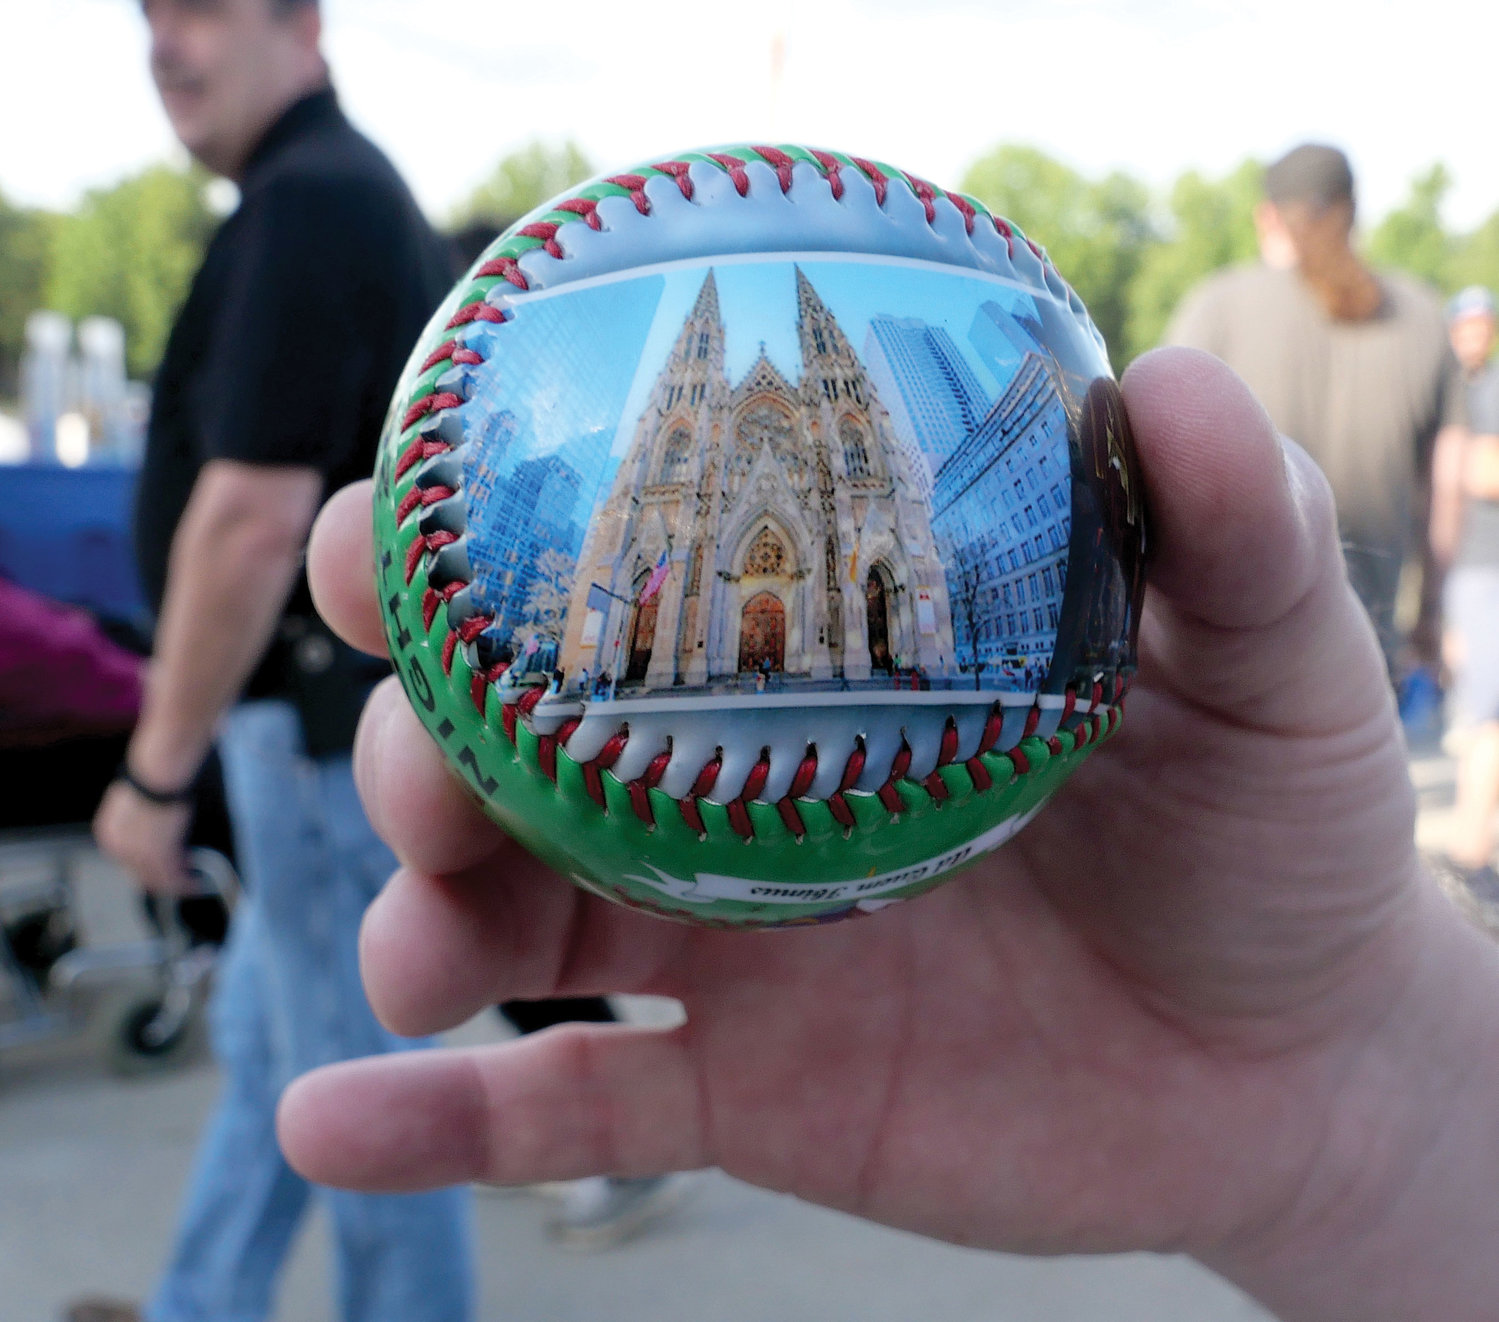 A commemorative baseball, which was given to fans, features an image of St. Patrick's Cathedral.